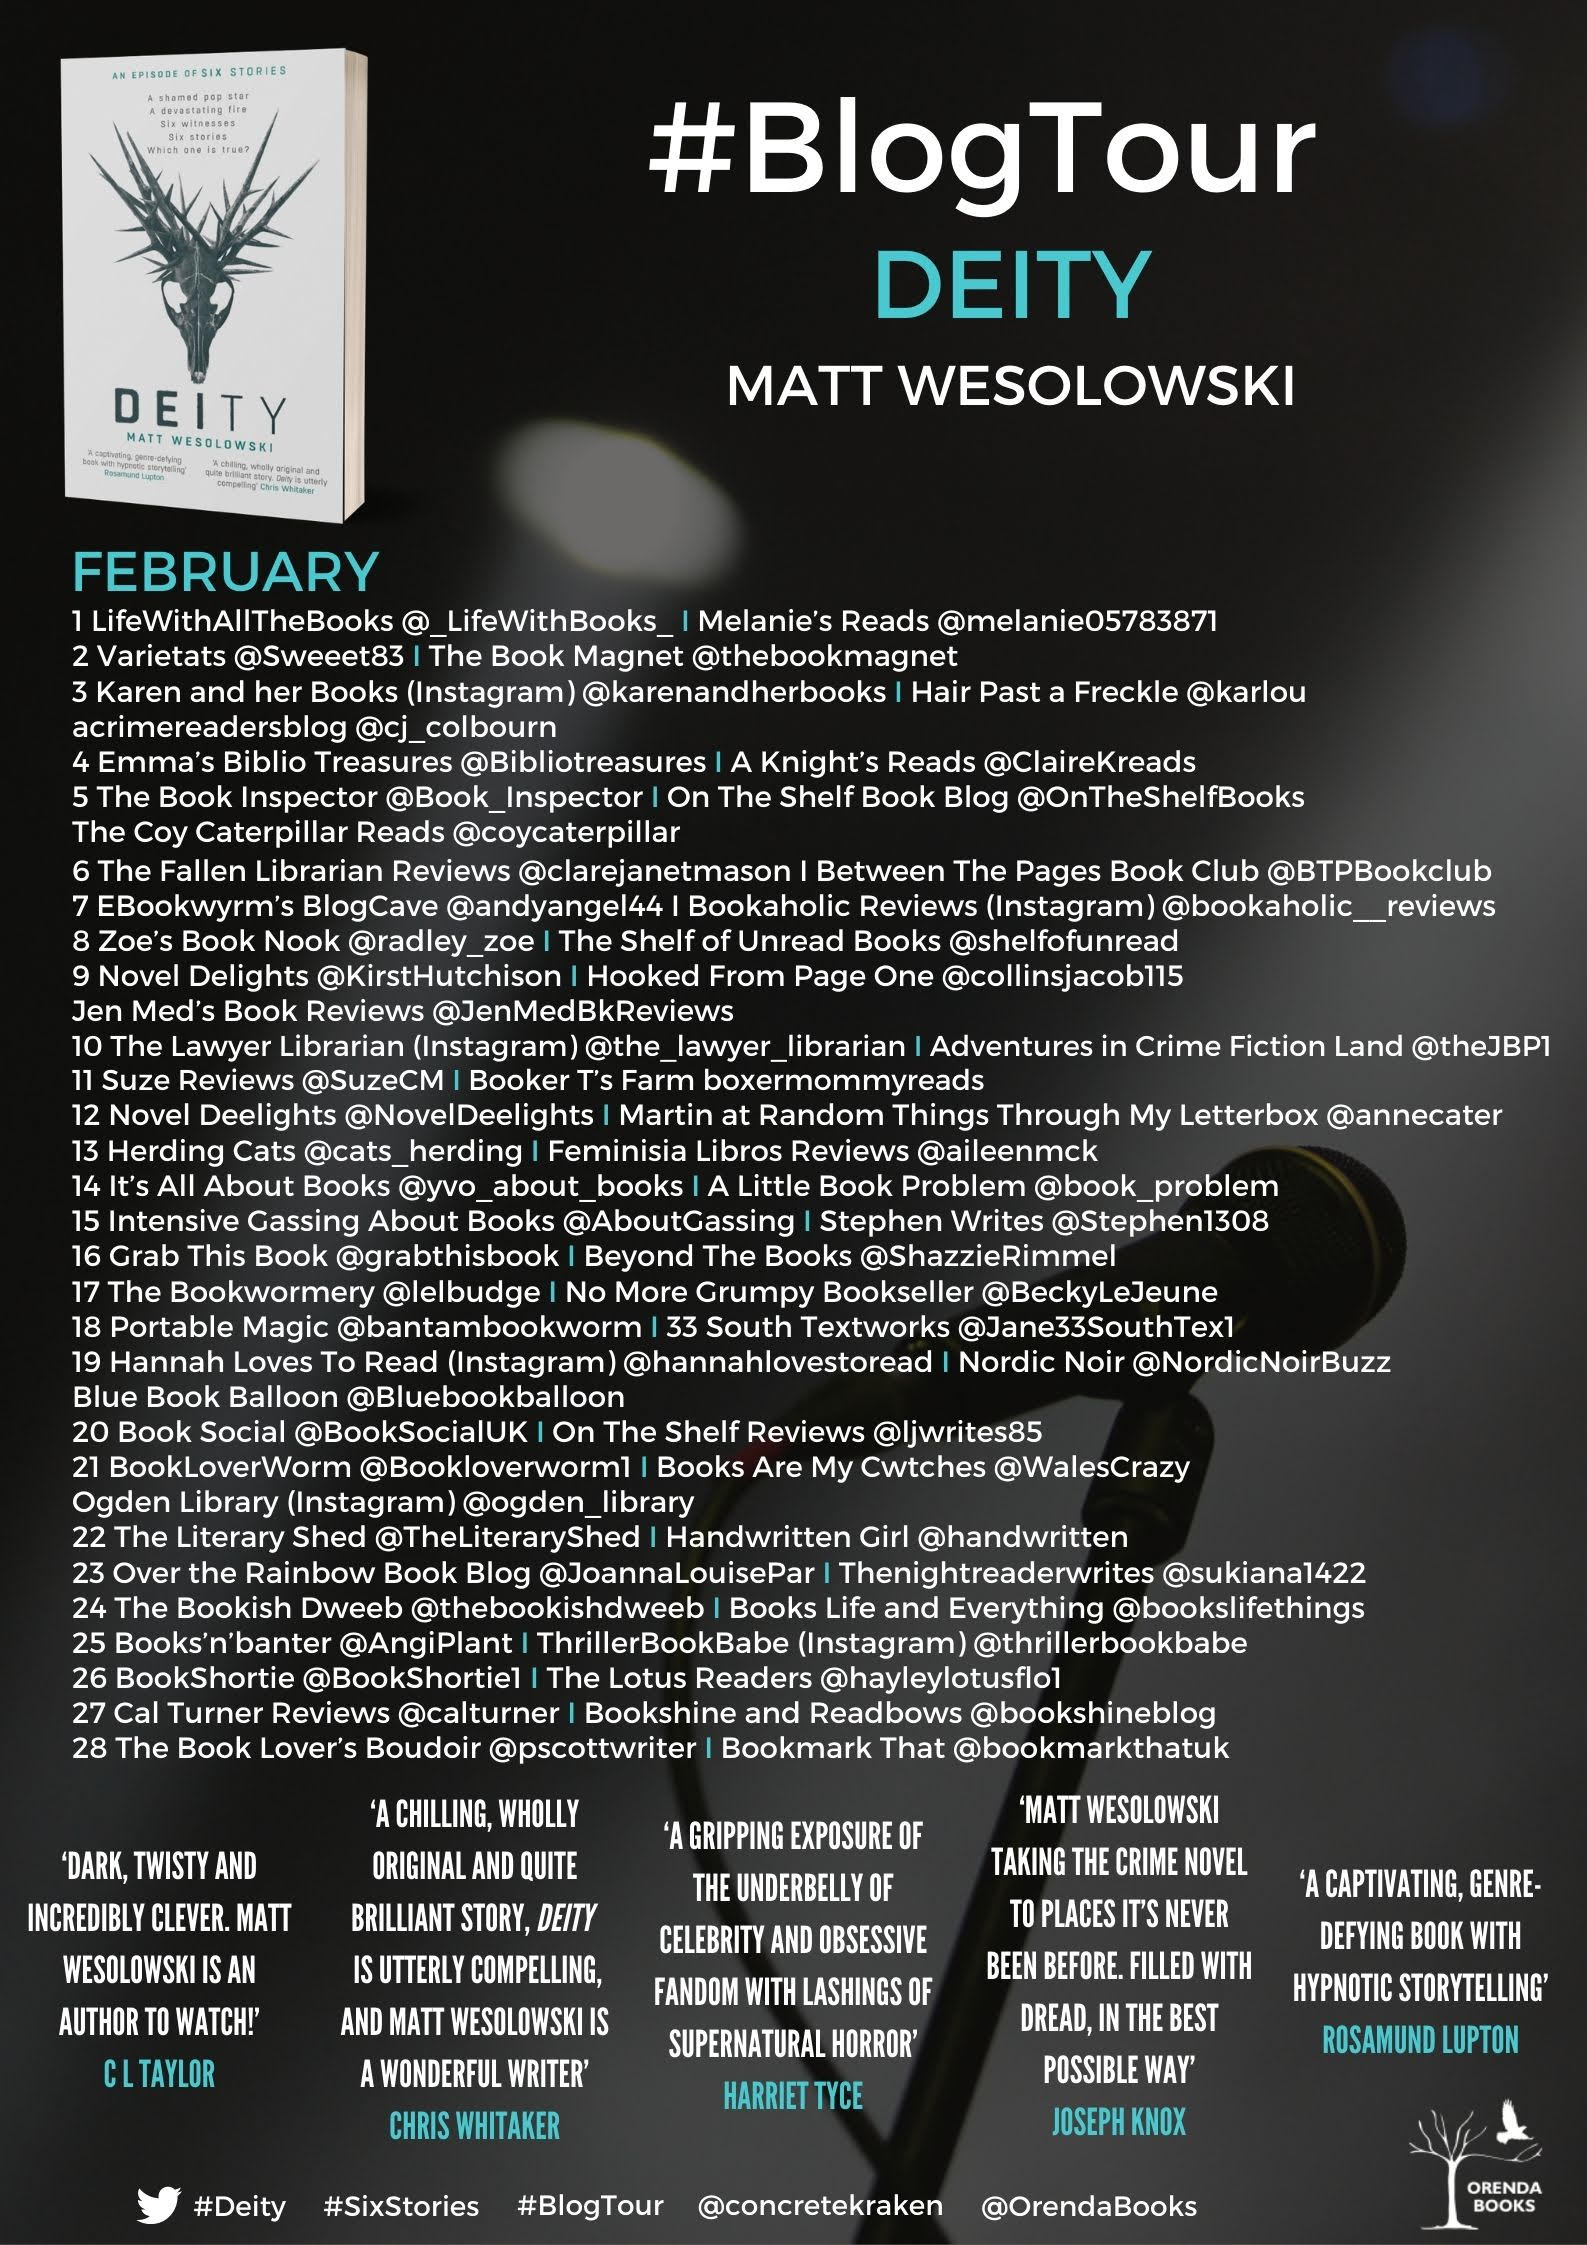 The Blog Tour stops for Deity